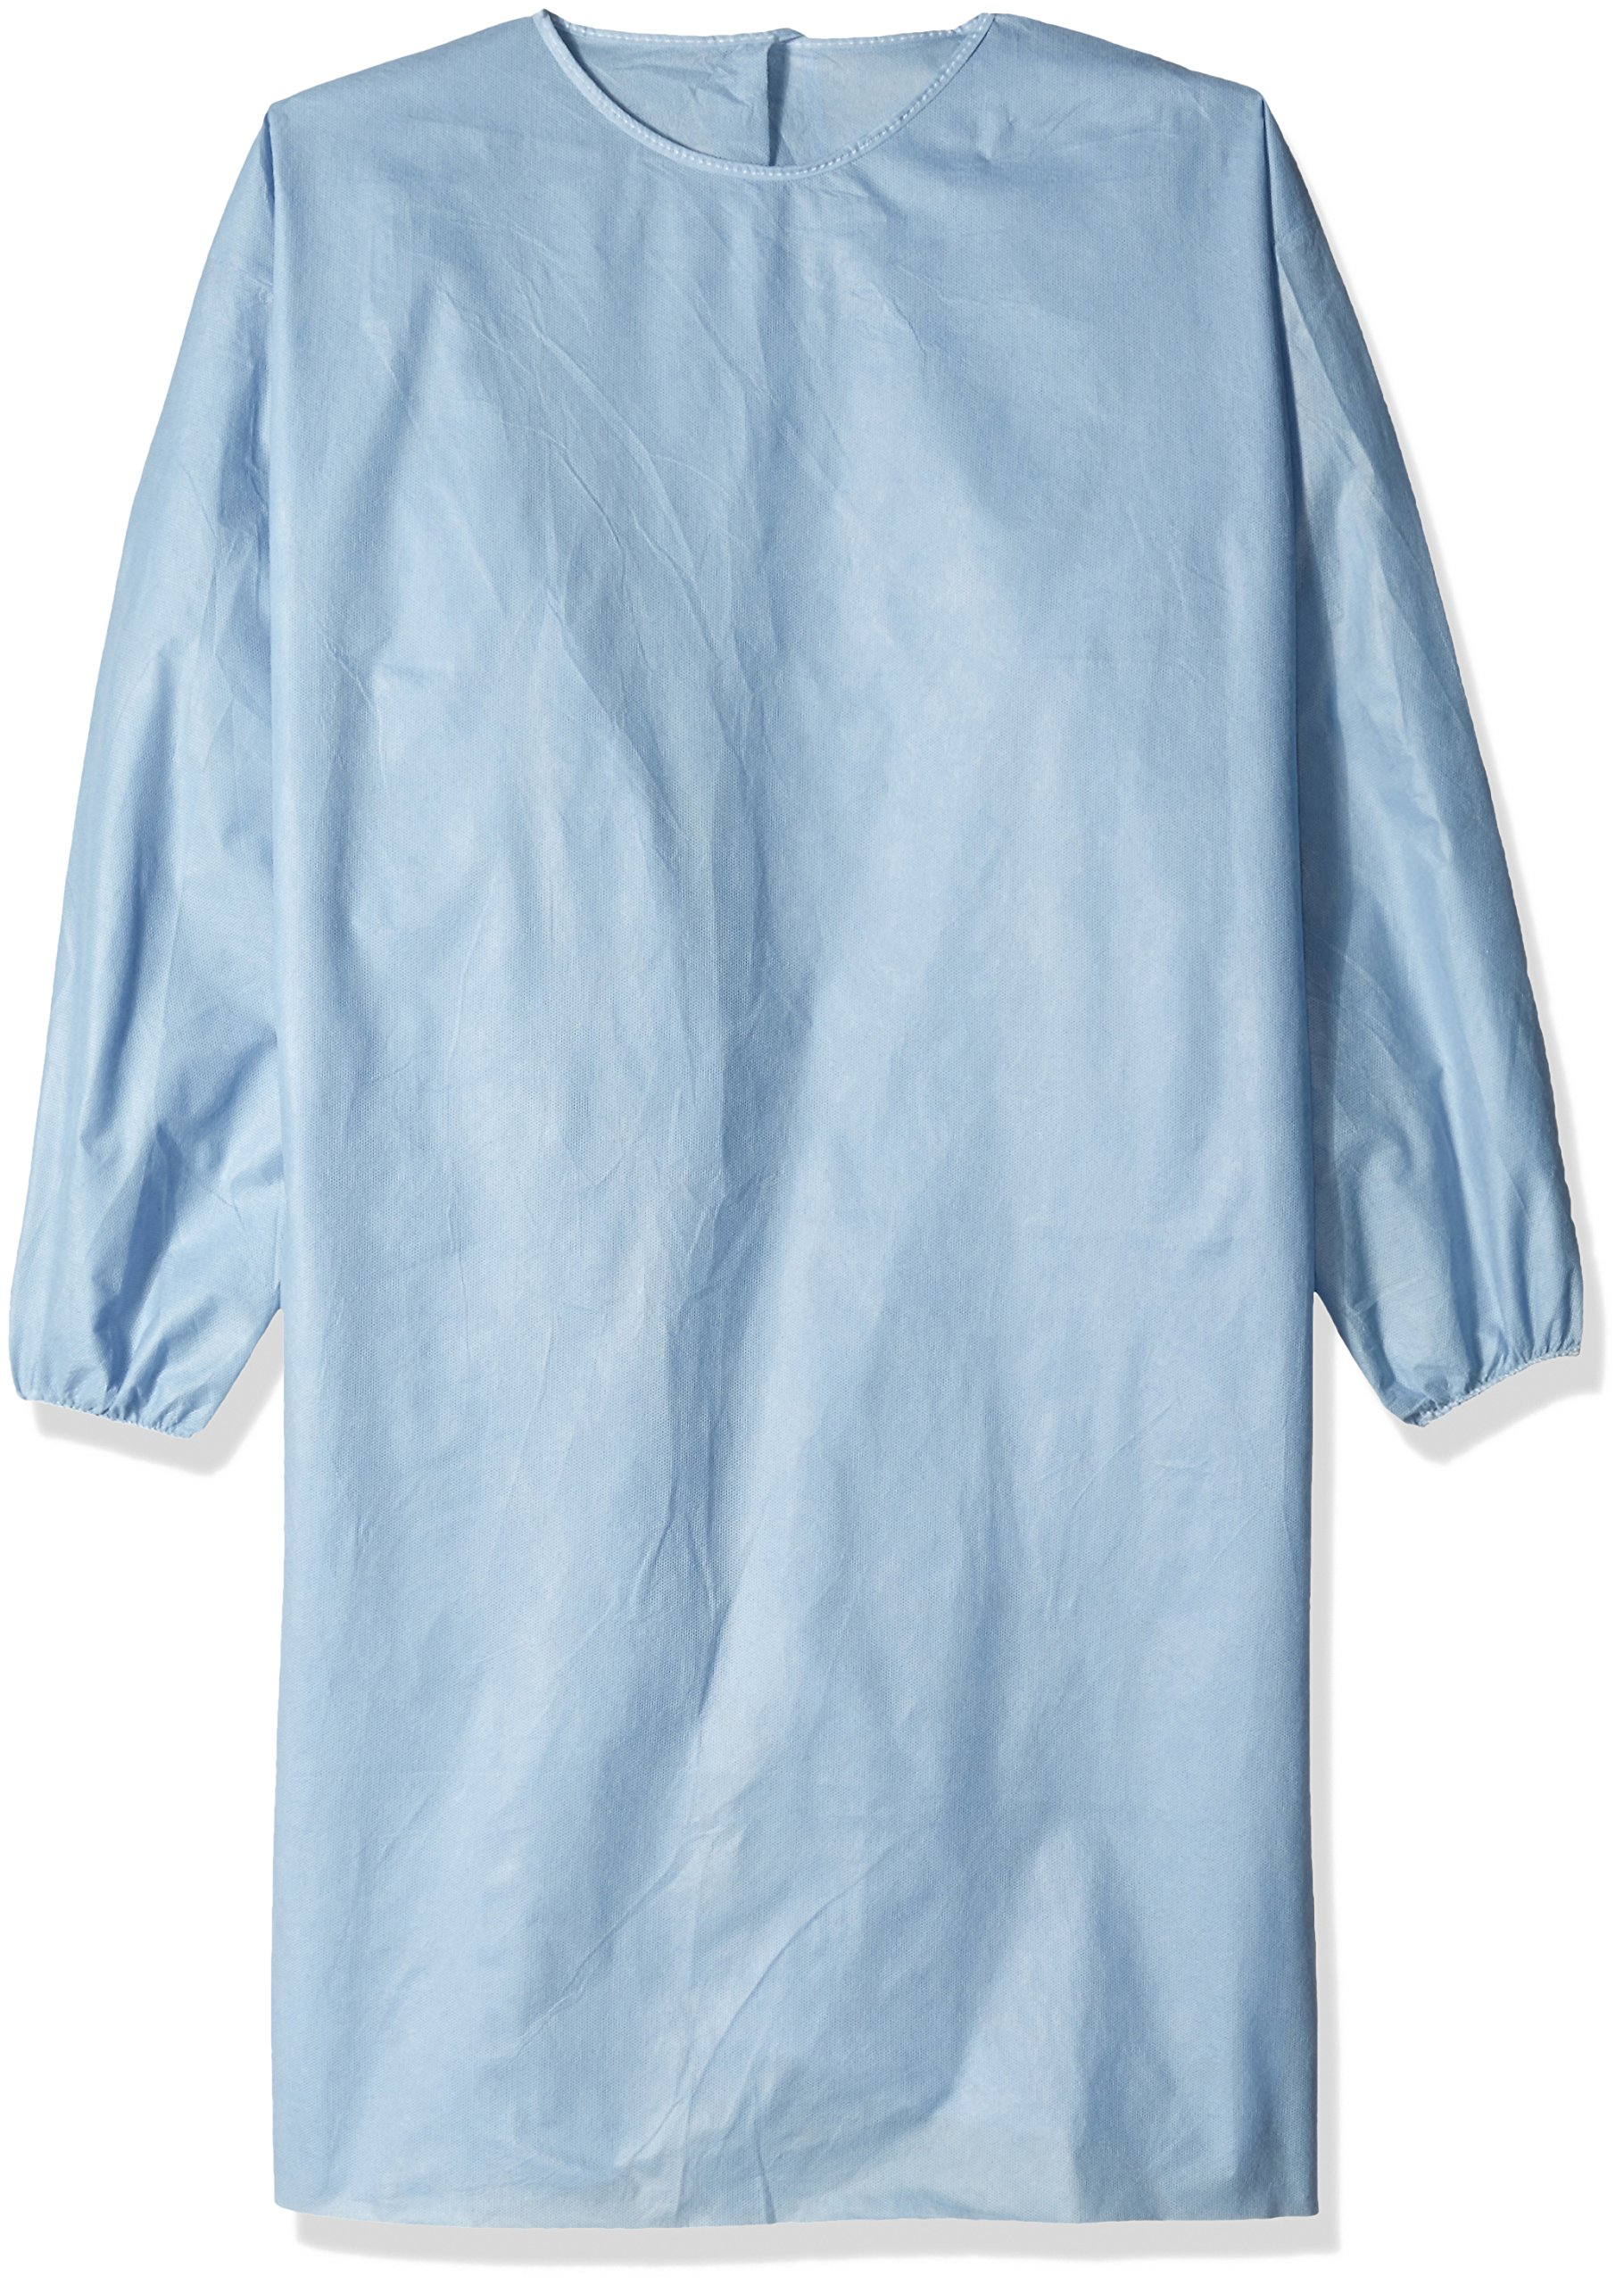 Precept 51181 Non-AAMI SMS Gowns, Full Back, Universal, LG, Blue (Pack of 100)